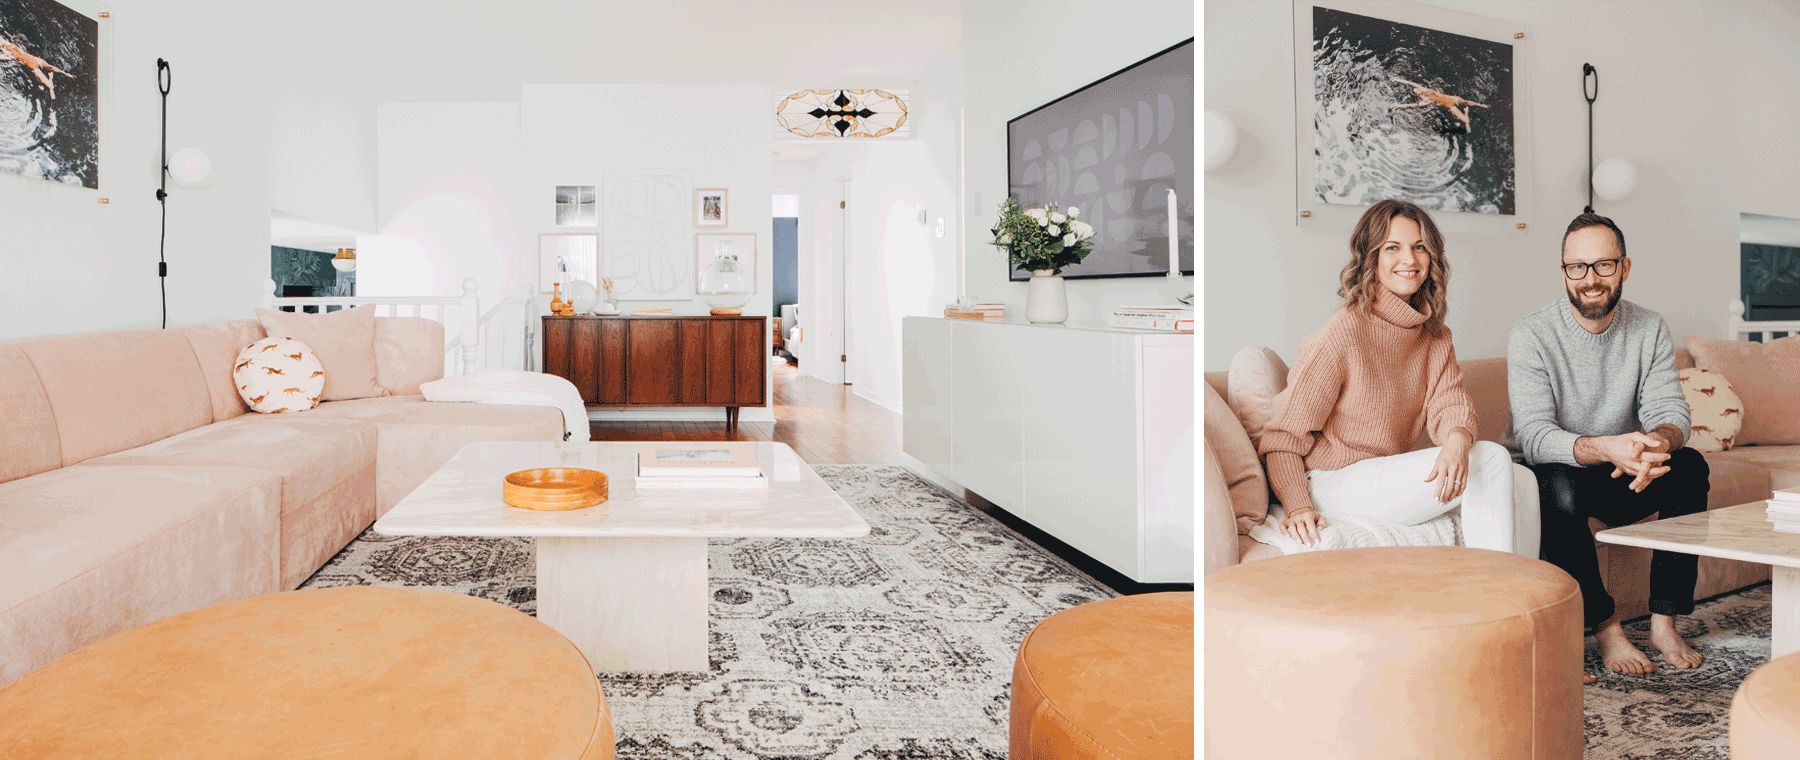 Warmth, balance, and authenticity — Inside the home of design blogger Ashley Izsak